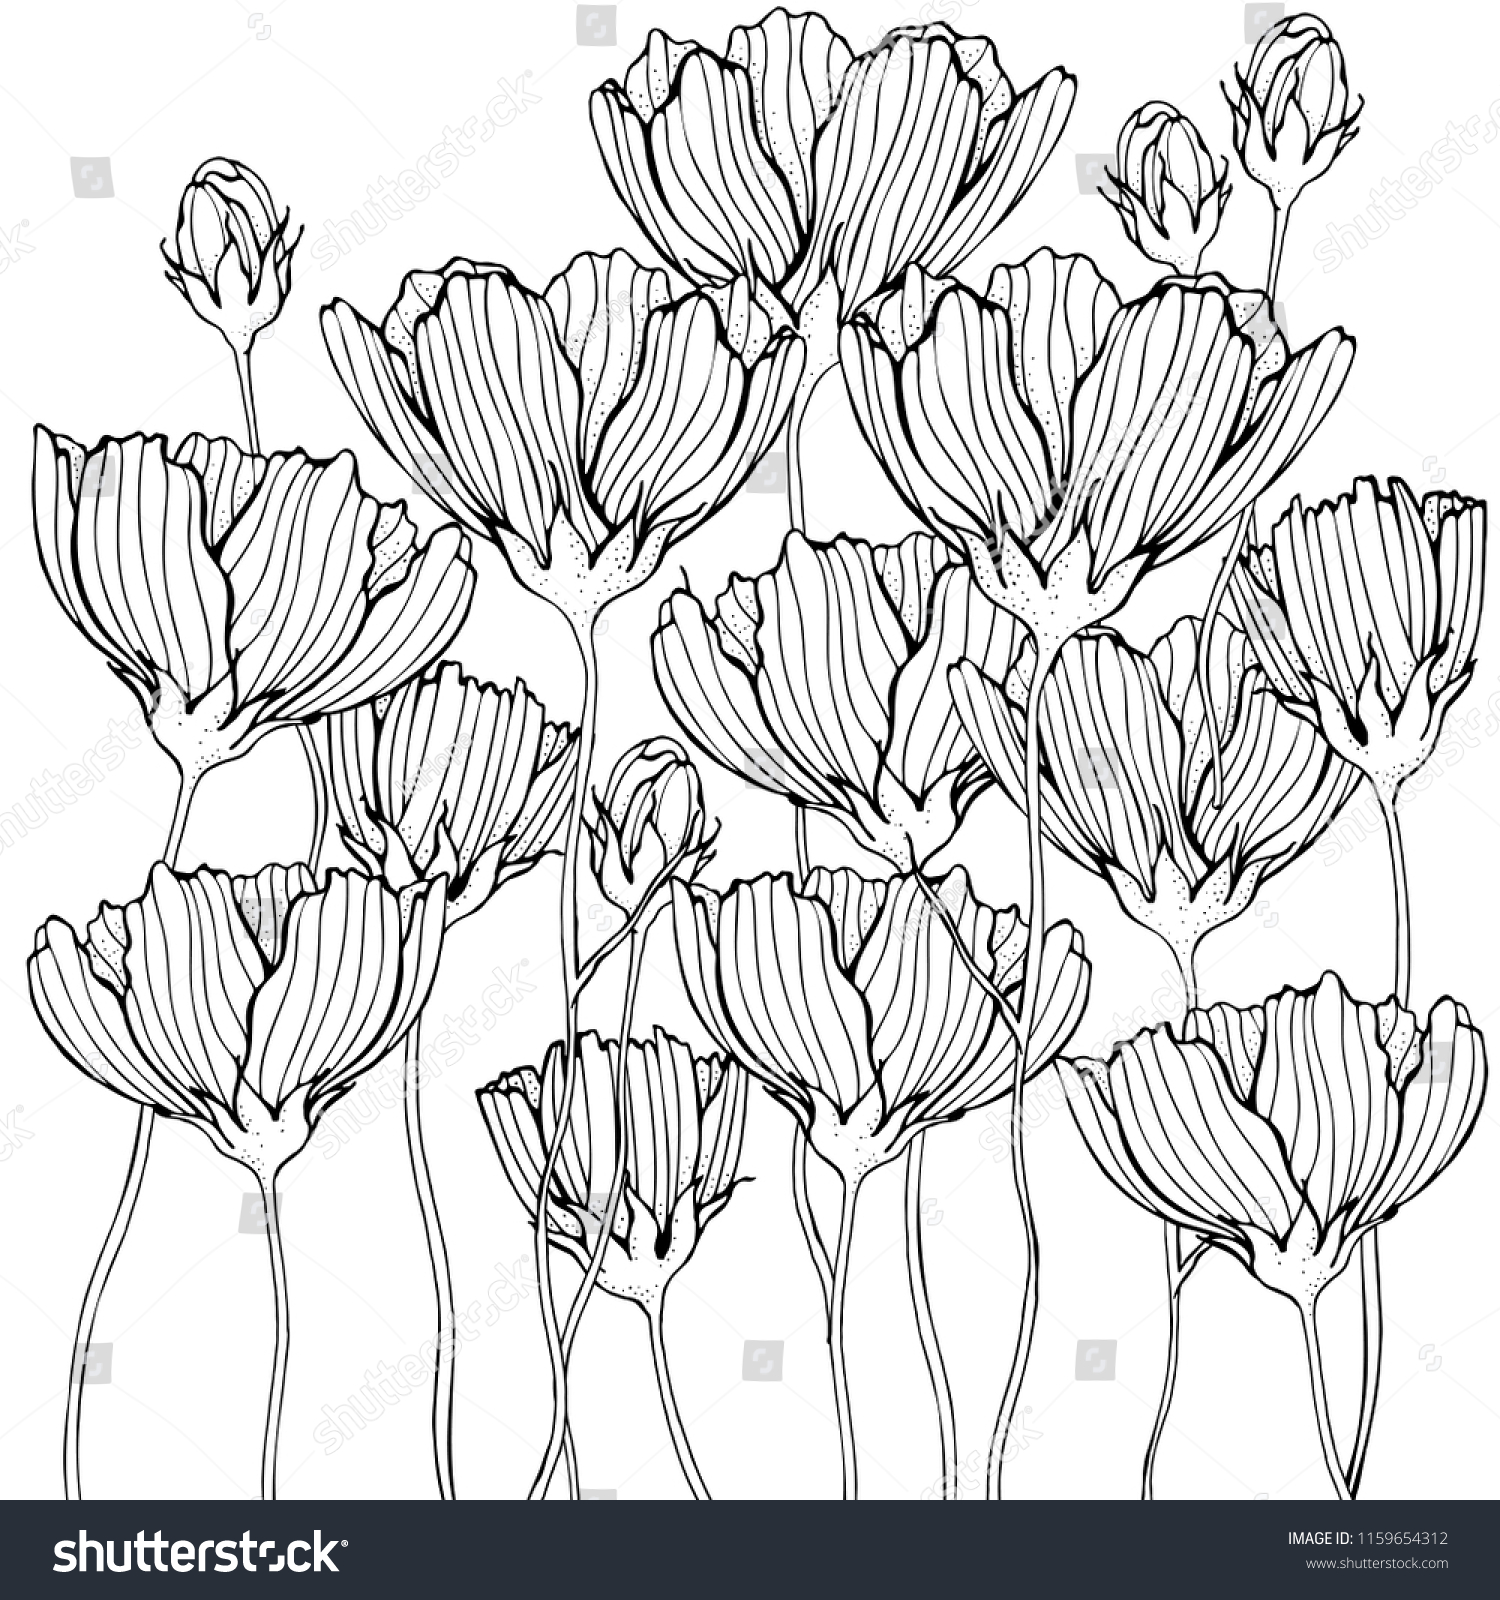 Coloring Book Page Flowers Leaf Black Stock Vector Royalty Free 1159654312